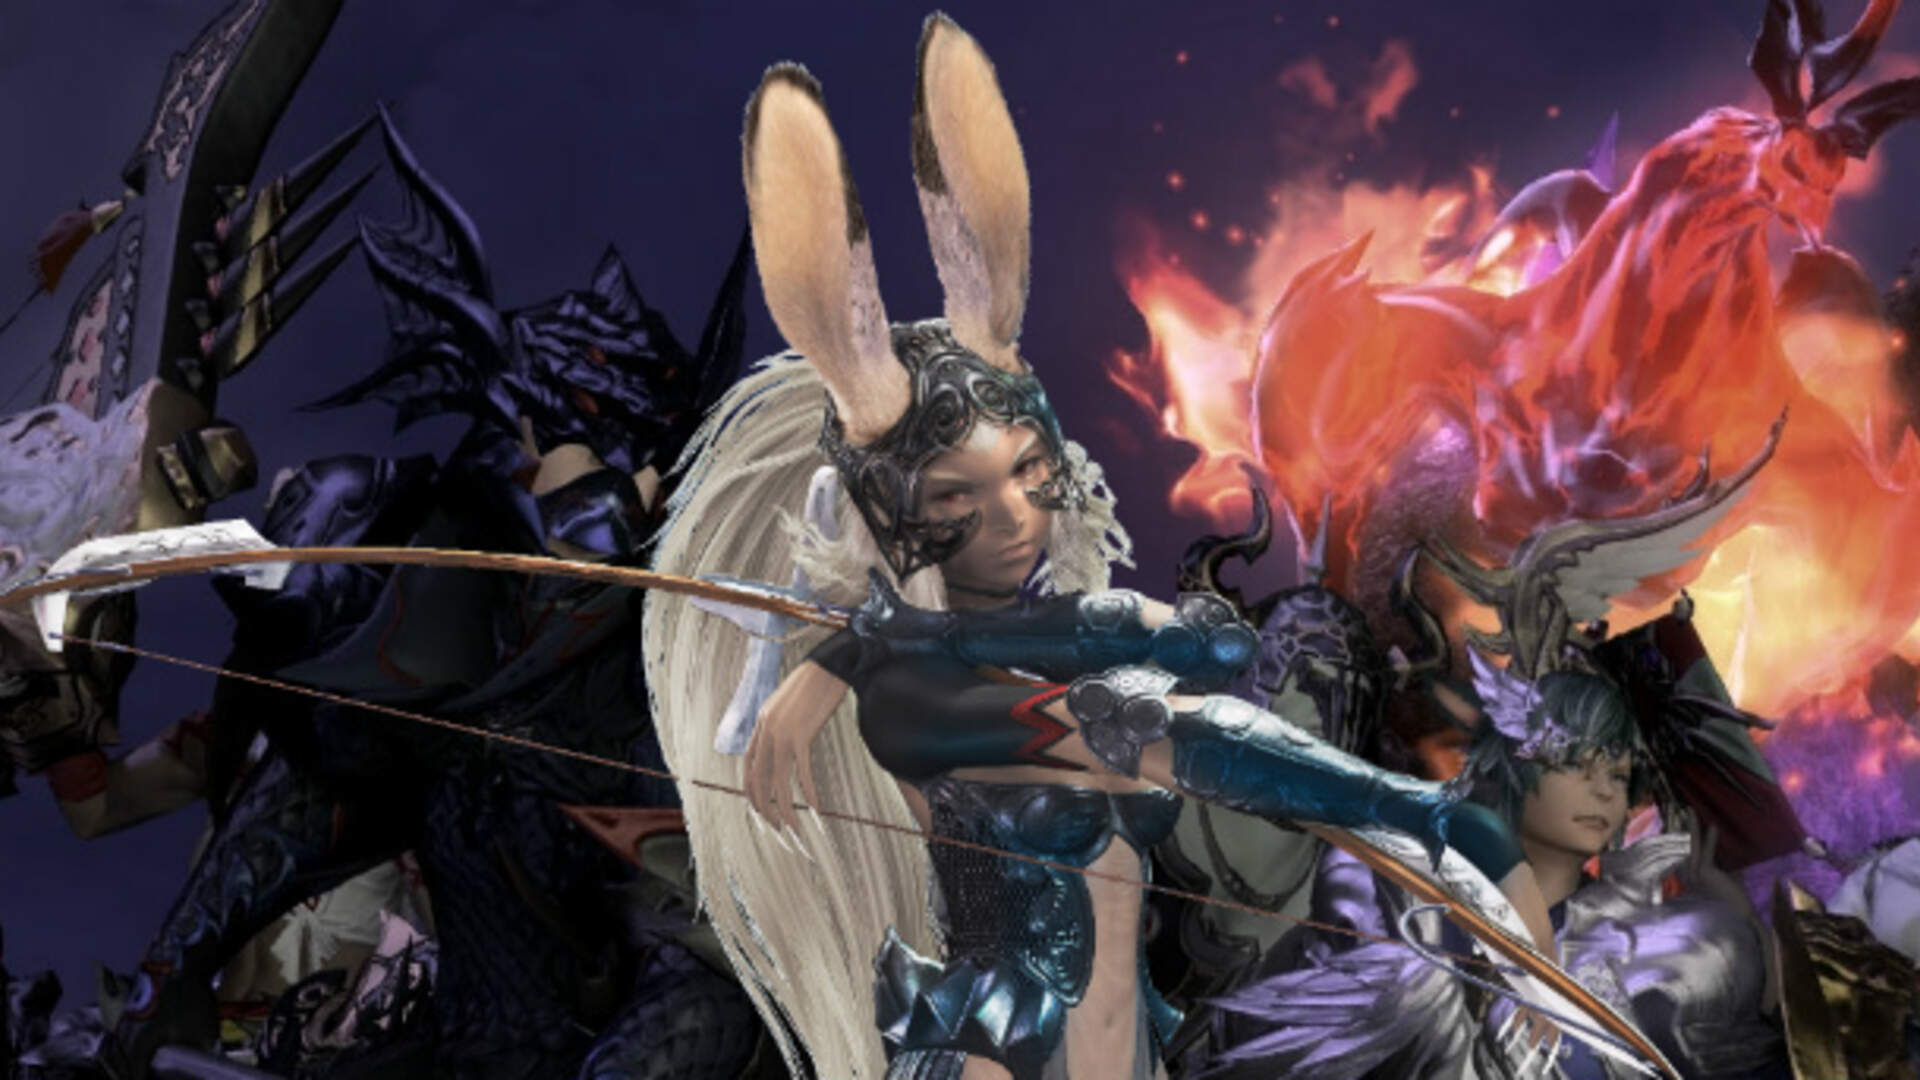 Final Fantasy Xiv Players Shouldn T Give Up Hope On Ffxii S Viera Race Usgamer